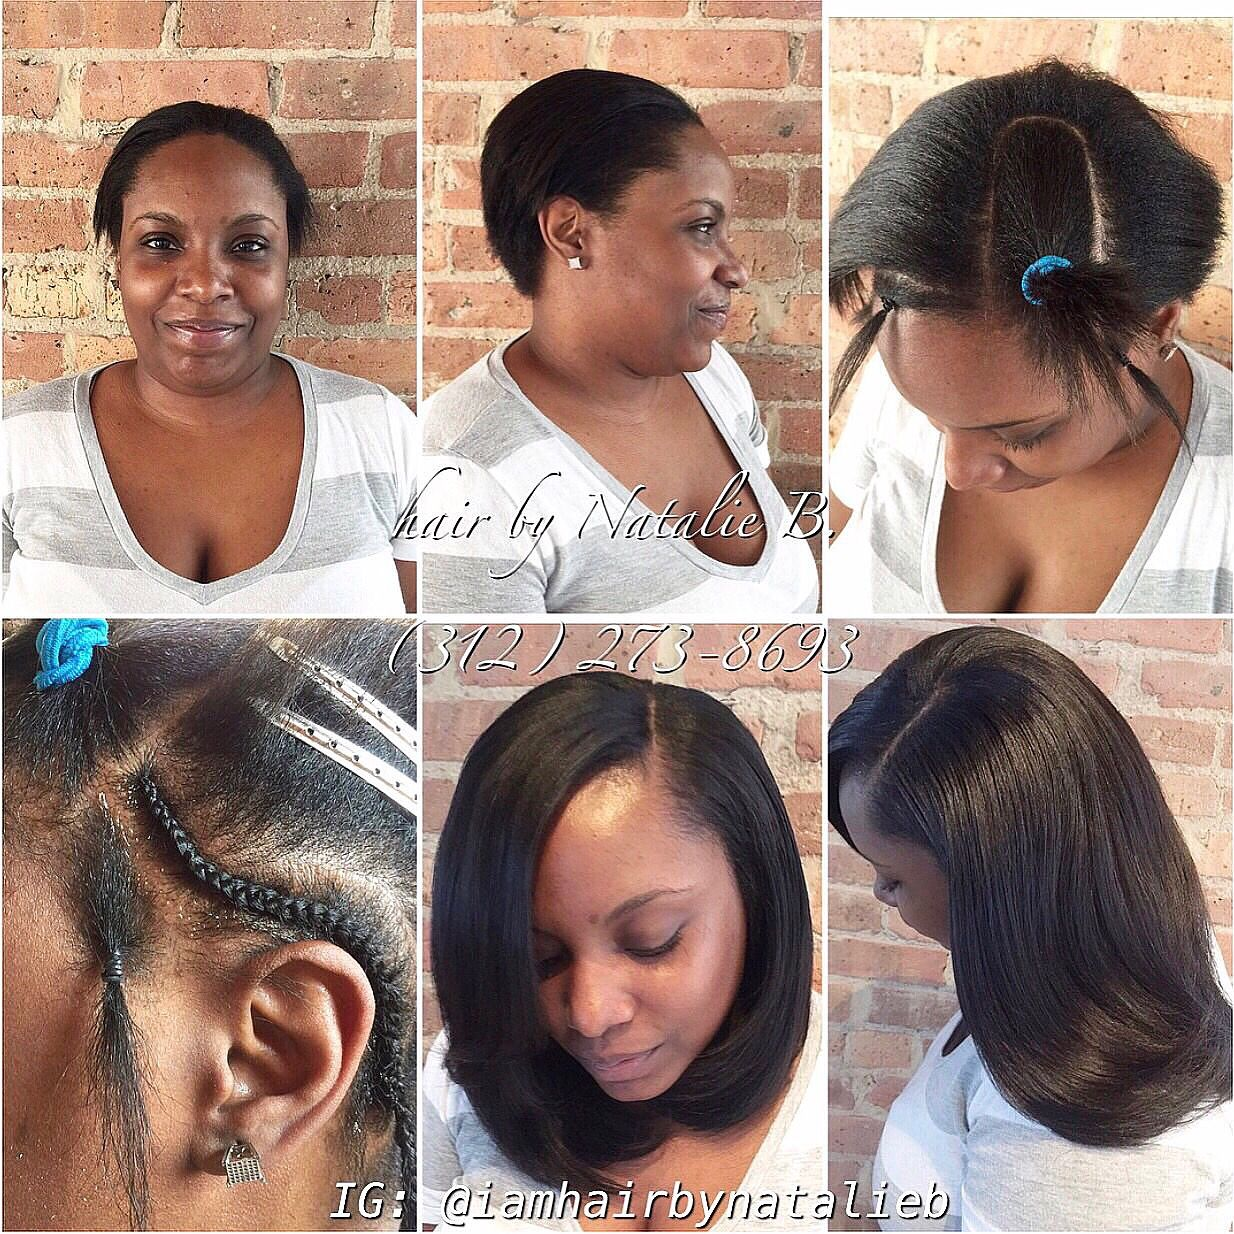 Traditional Sew In Hair Weave With Leave Out On A Client With Short Hair Call Or Text Natalie B At Weave Hairstyles Hair Styles Short Hair Styles